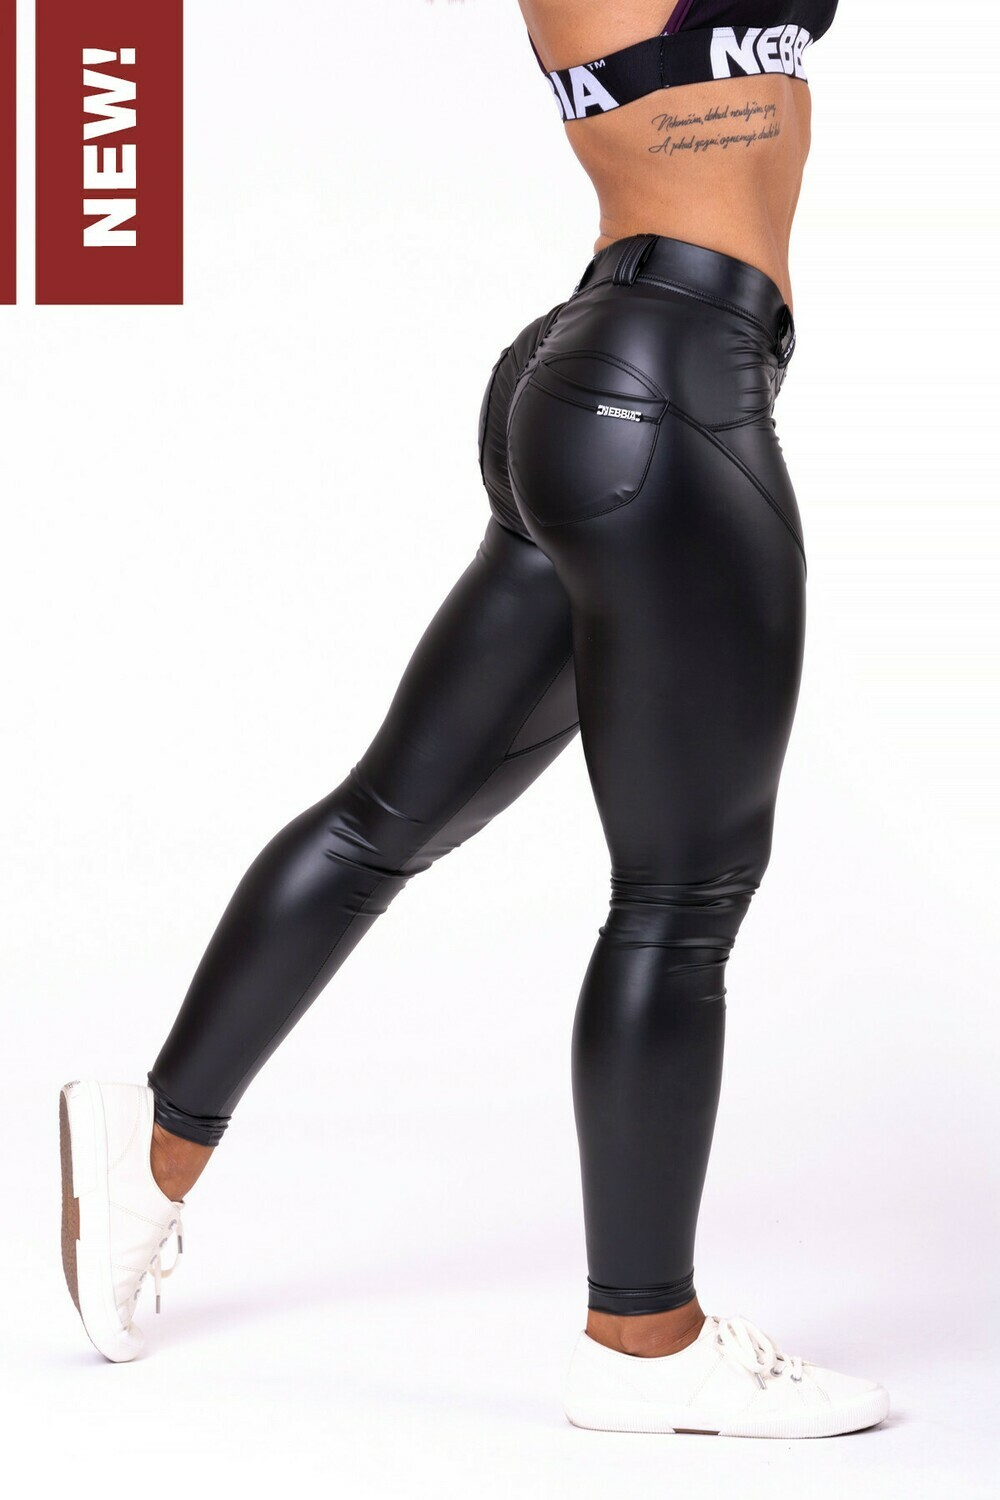 "БРЮКИ NEBBIA BUBBLE BUTT PANTS ""CAT WOMAN"" 539"